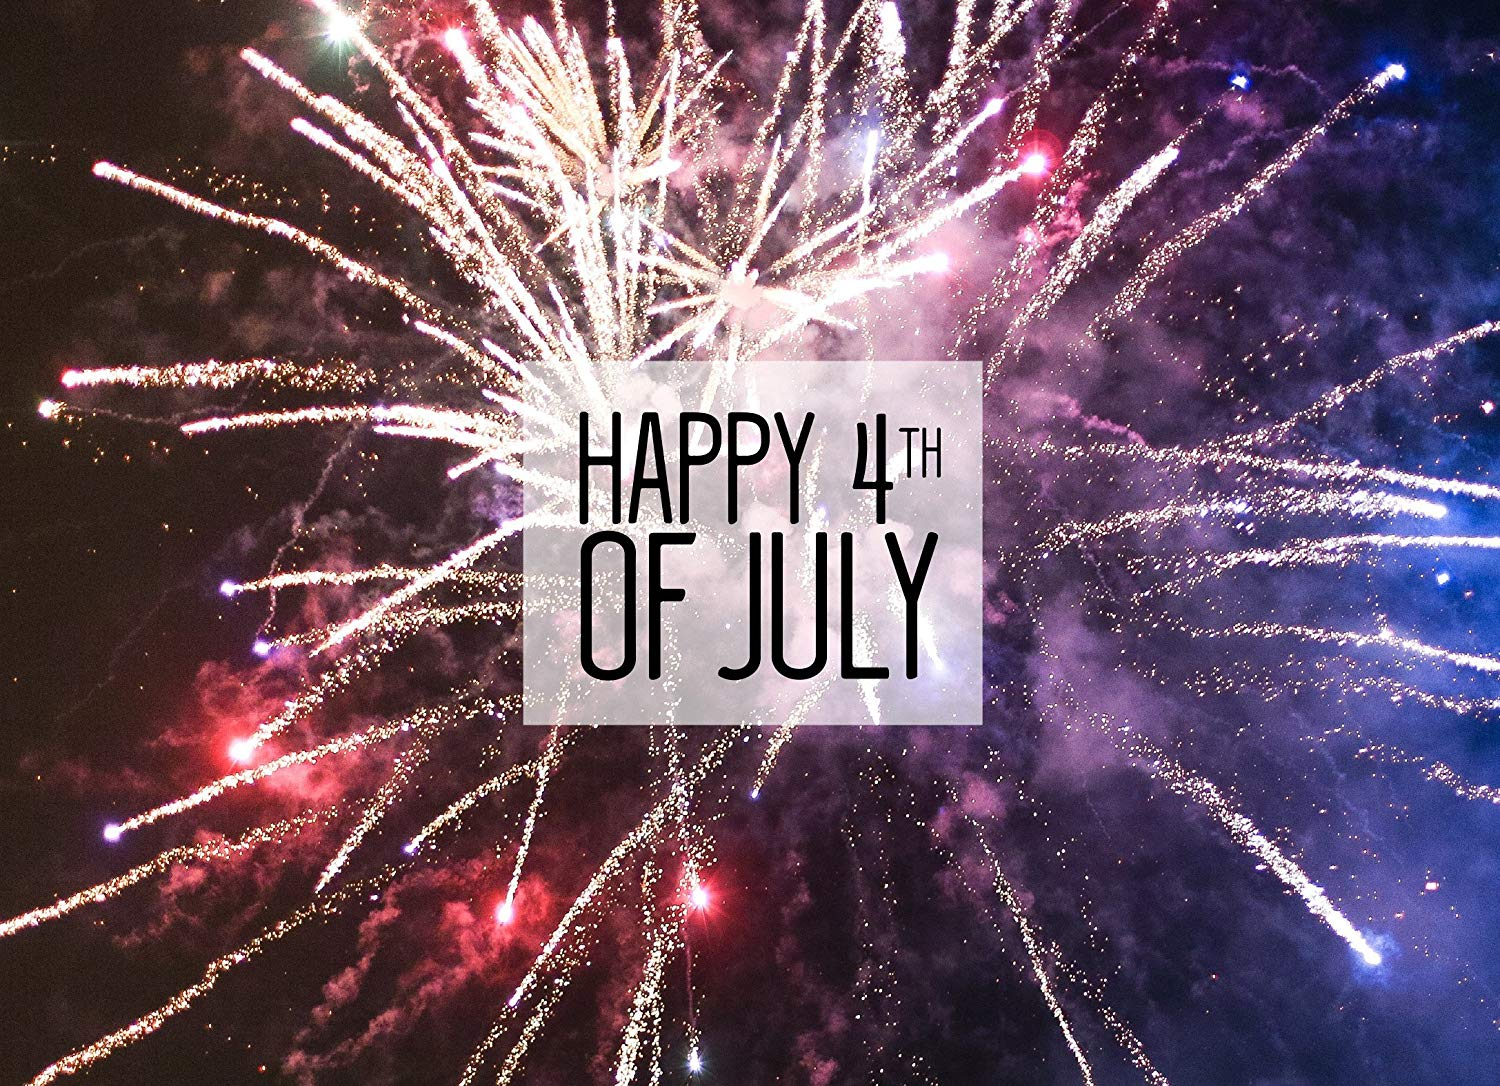 July 4th Greeting Cards - JF1801. Greeting Cards with Fireworks Surrounding a Happy 4th of July Message. Box Set has 25 Greeting Cards and 26 Red Colored Envelopes.